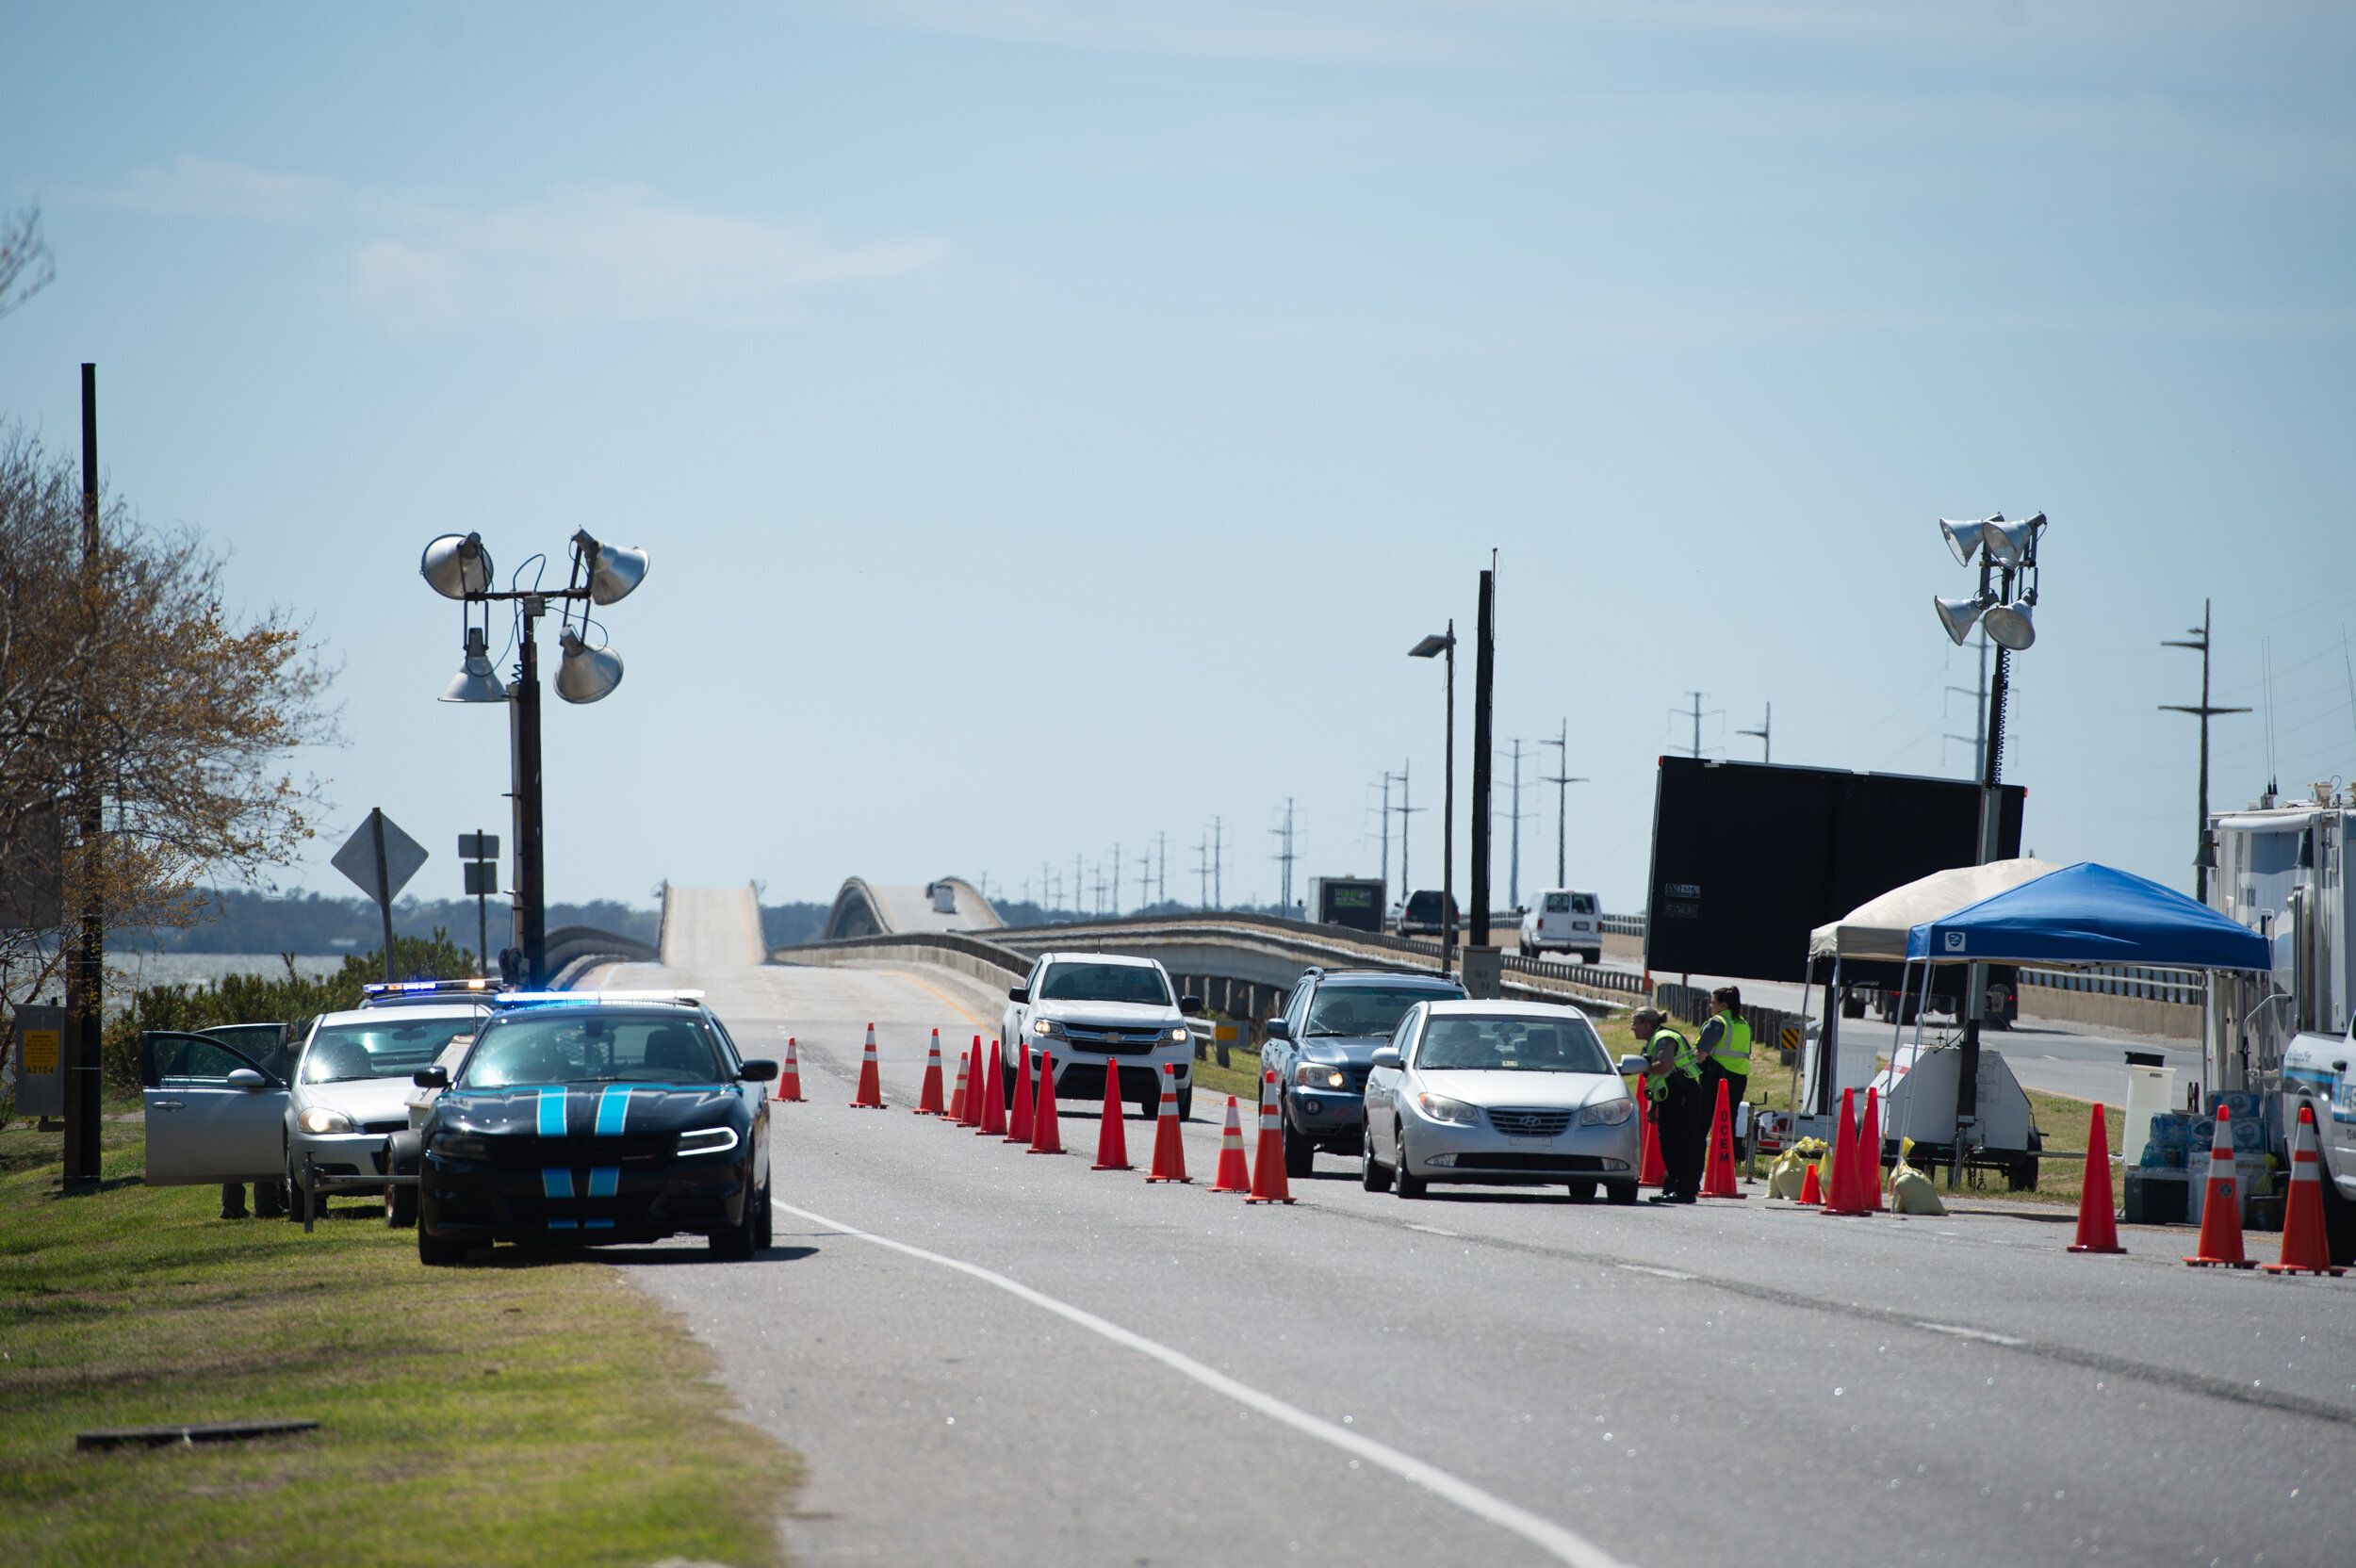 A roadblock checkpoint is set up in Kitty Hawk at the southern end of the Wright Memorial Bridge, which connects the Outer Ba